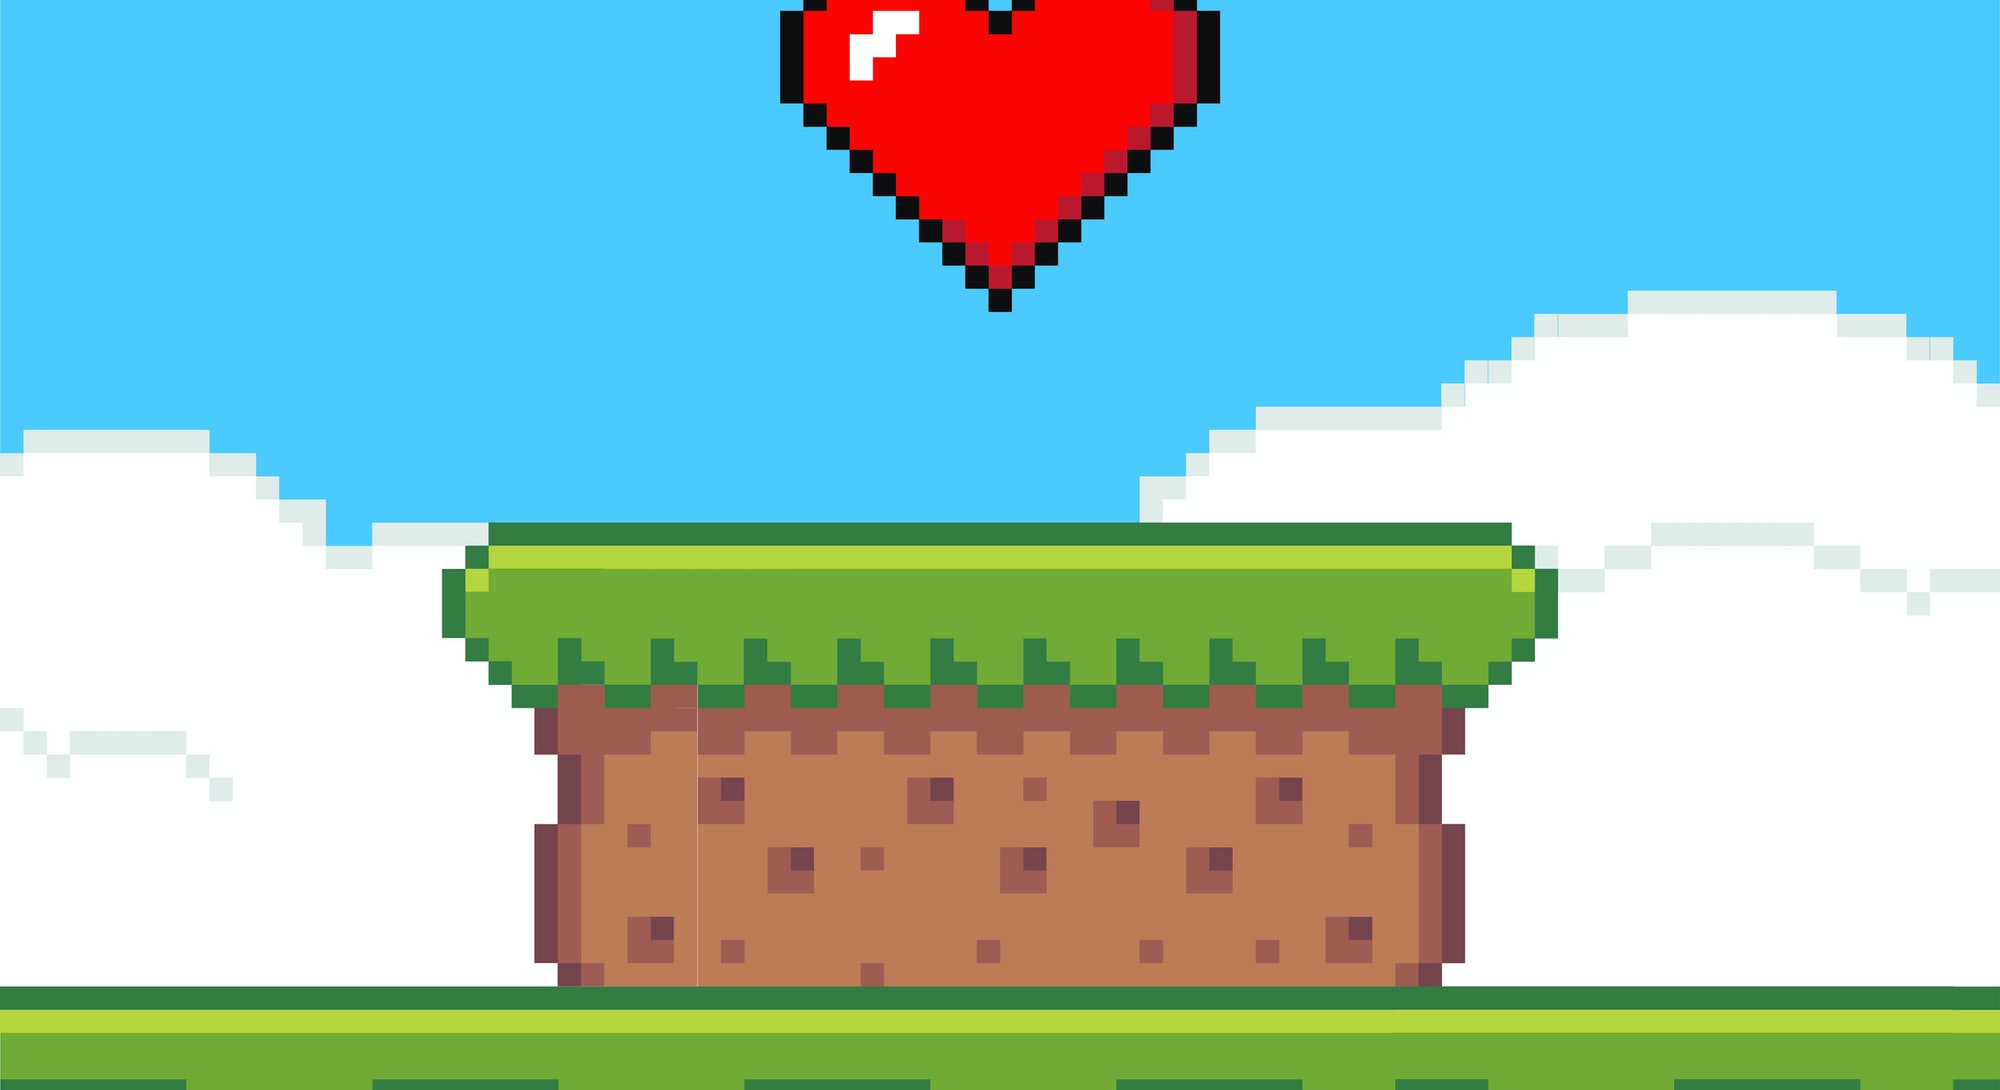 Pixel art game background with heart in the sky